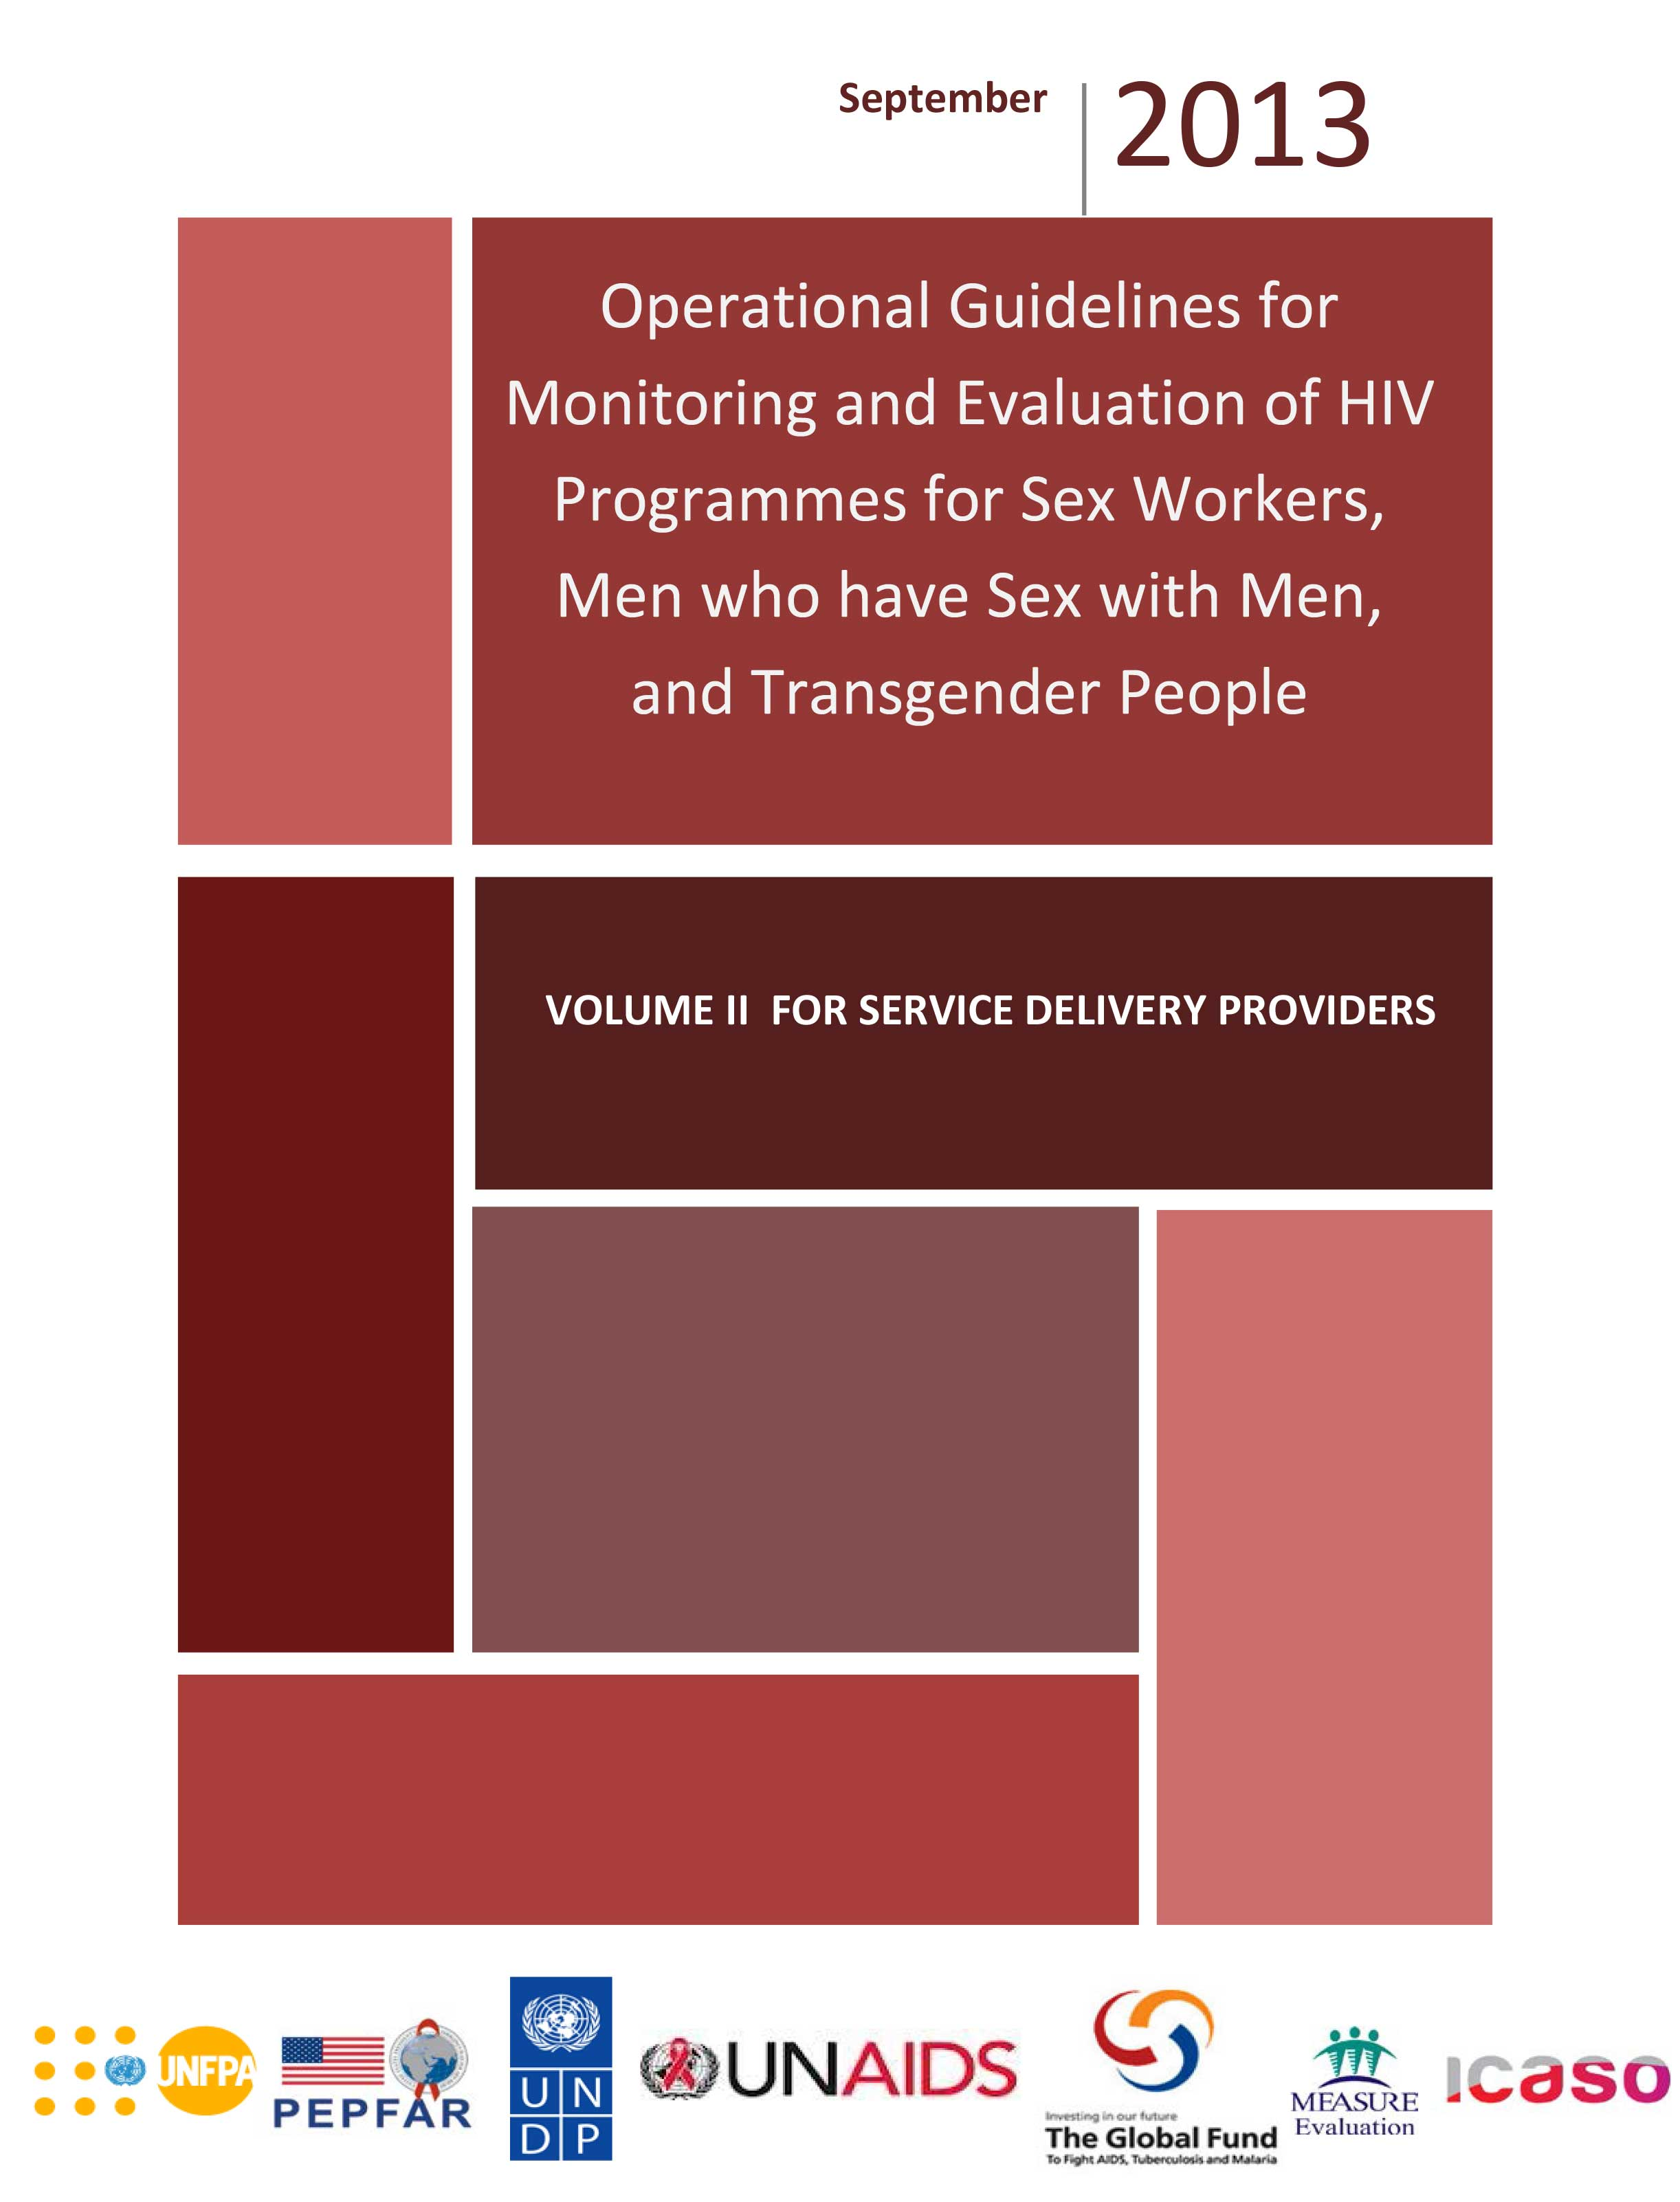 Operational Guidelines for Monitoring and Evaluation of HIV Programmes for Sex Workers